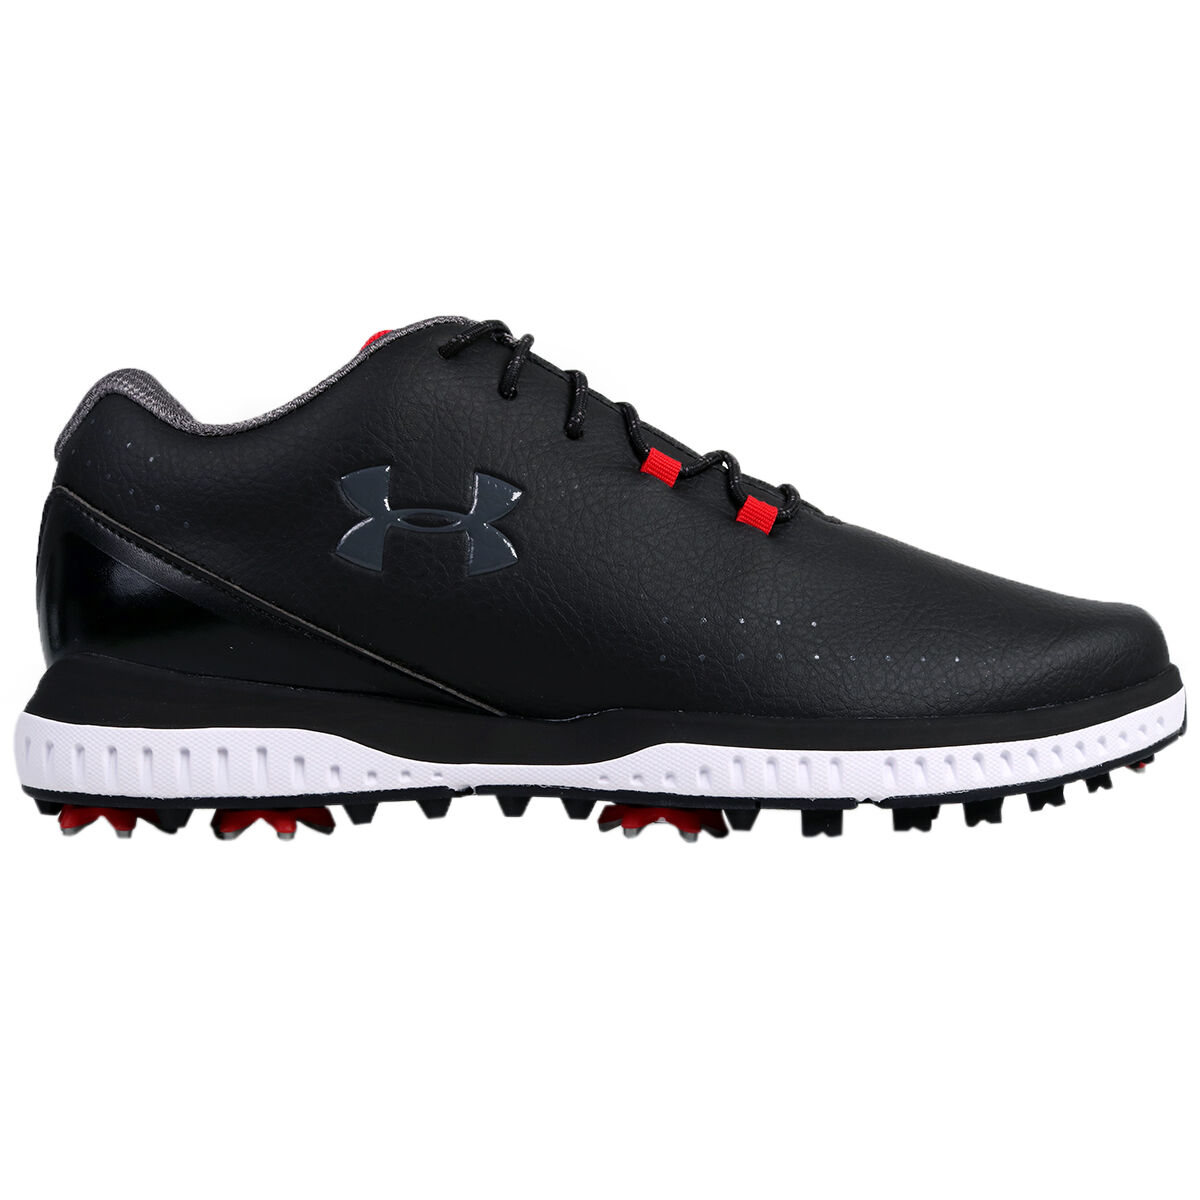 Under Armour Medal RST Shoes from